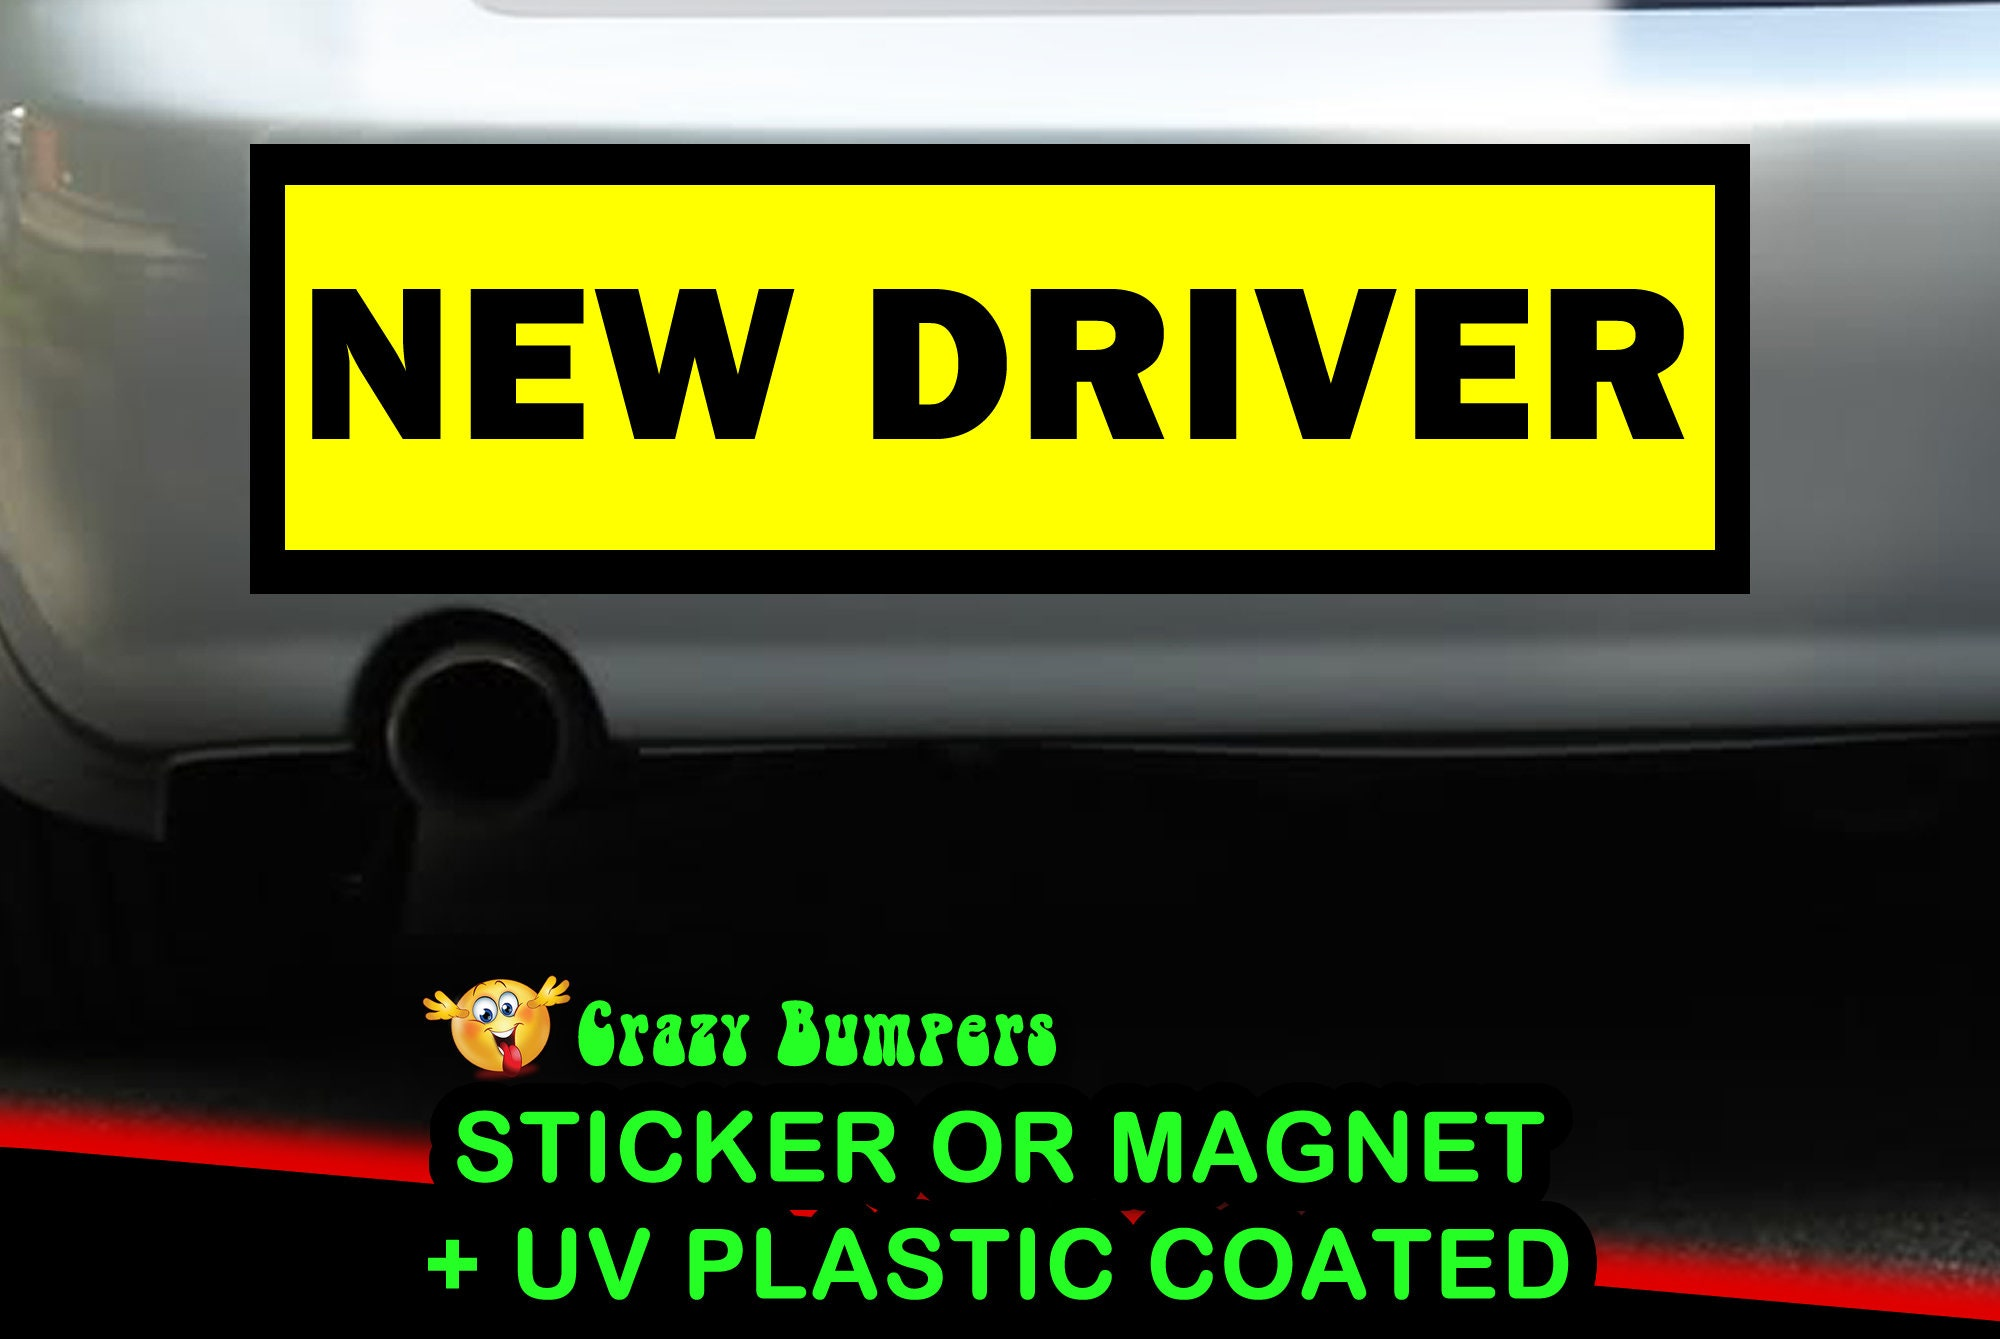 CAD$7.99 - NEW DRIVER YELLOW 10 x 3 Bumper Sticker or Magnetic Bumper Sticker Available